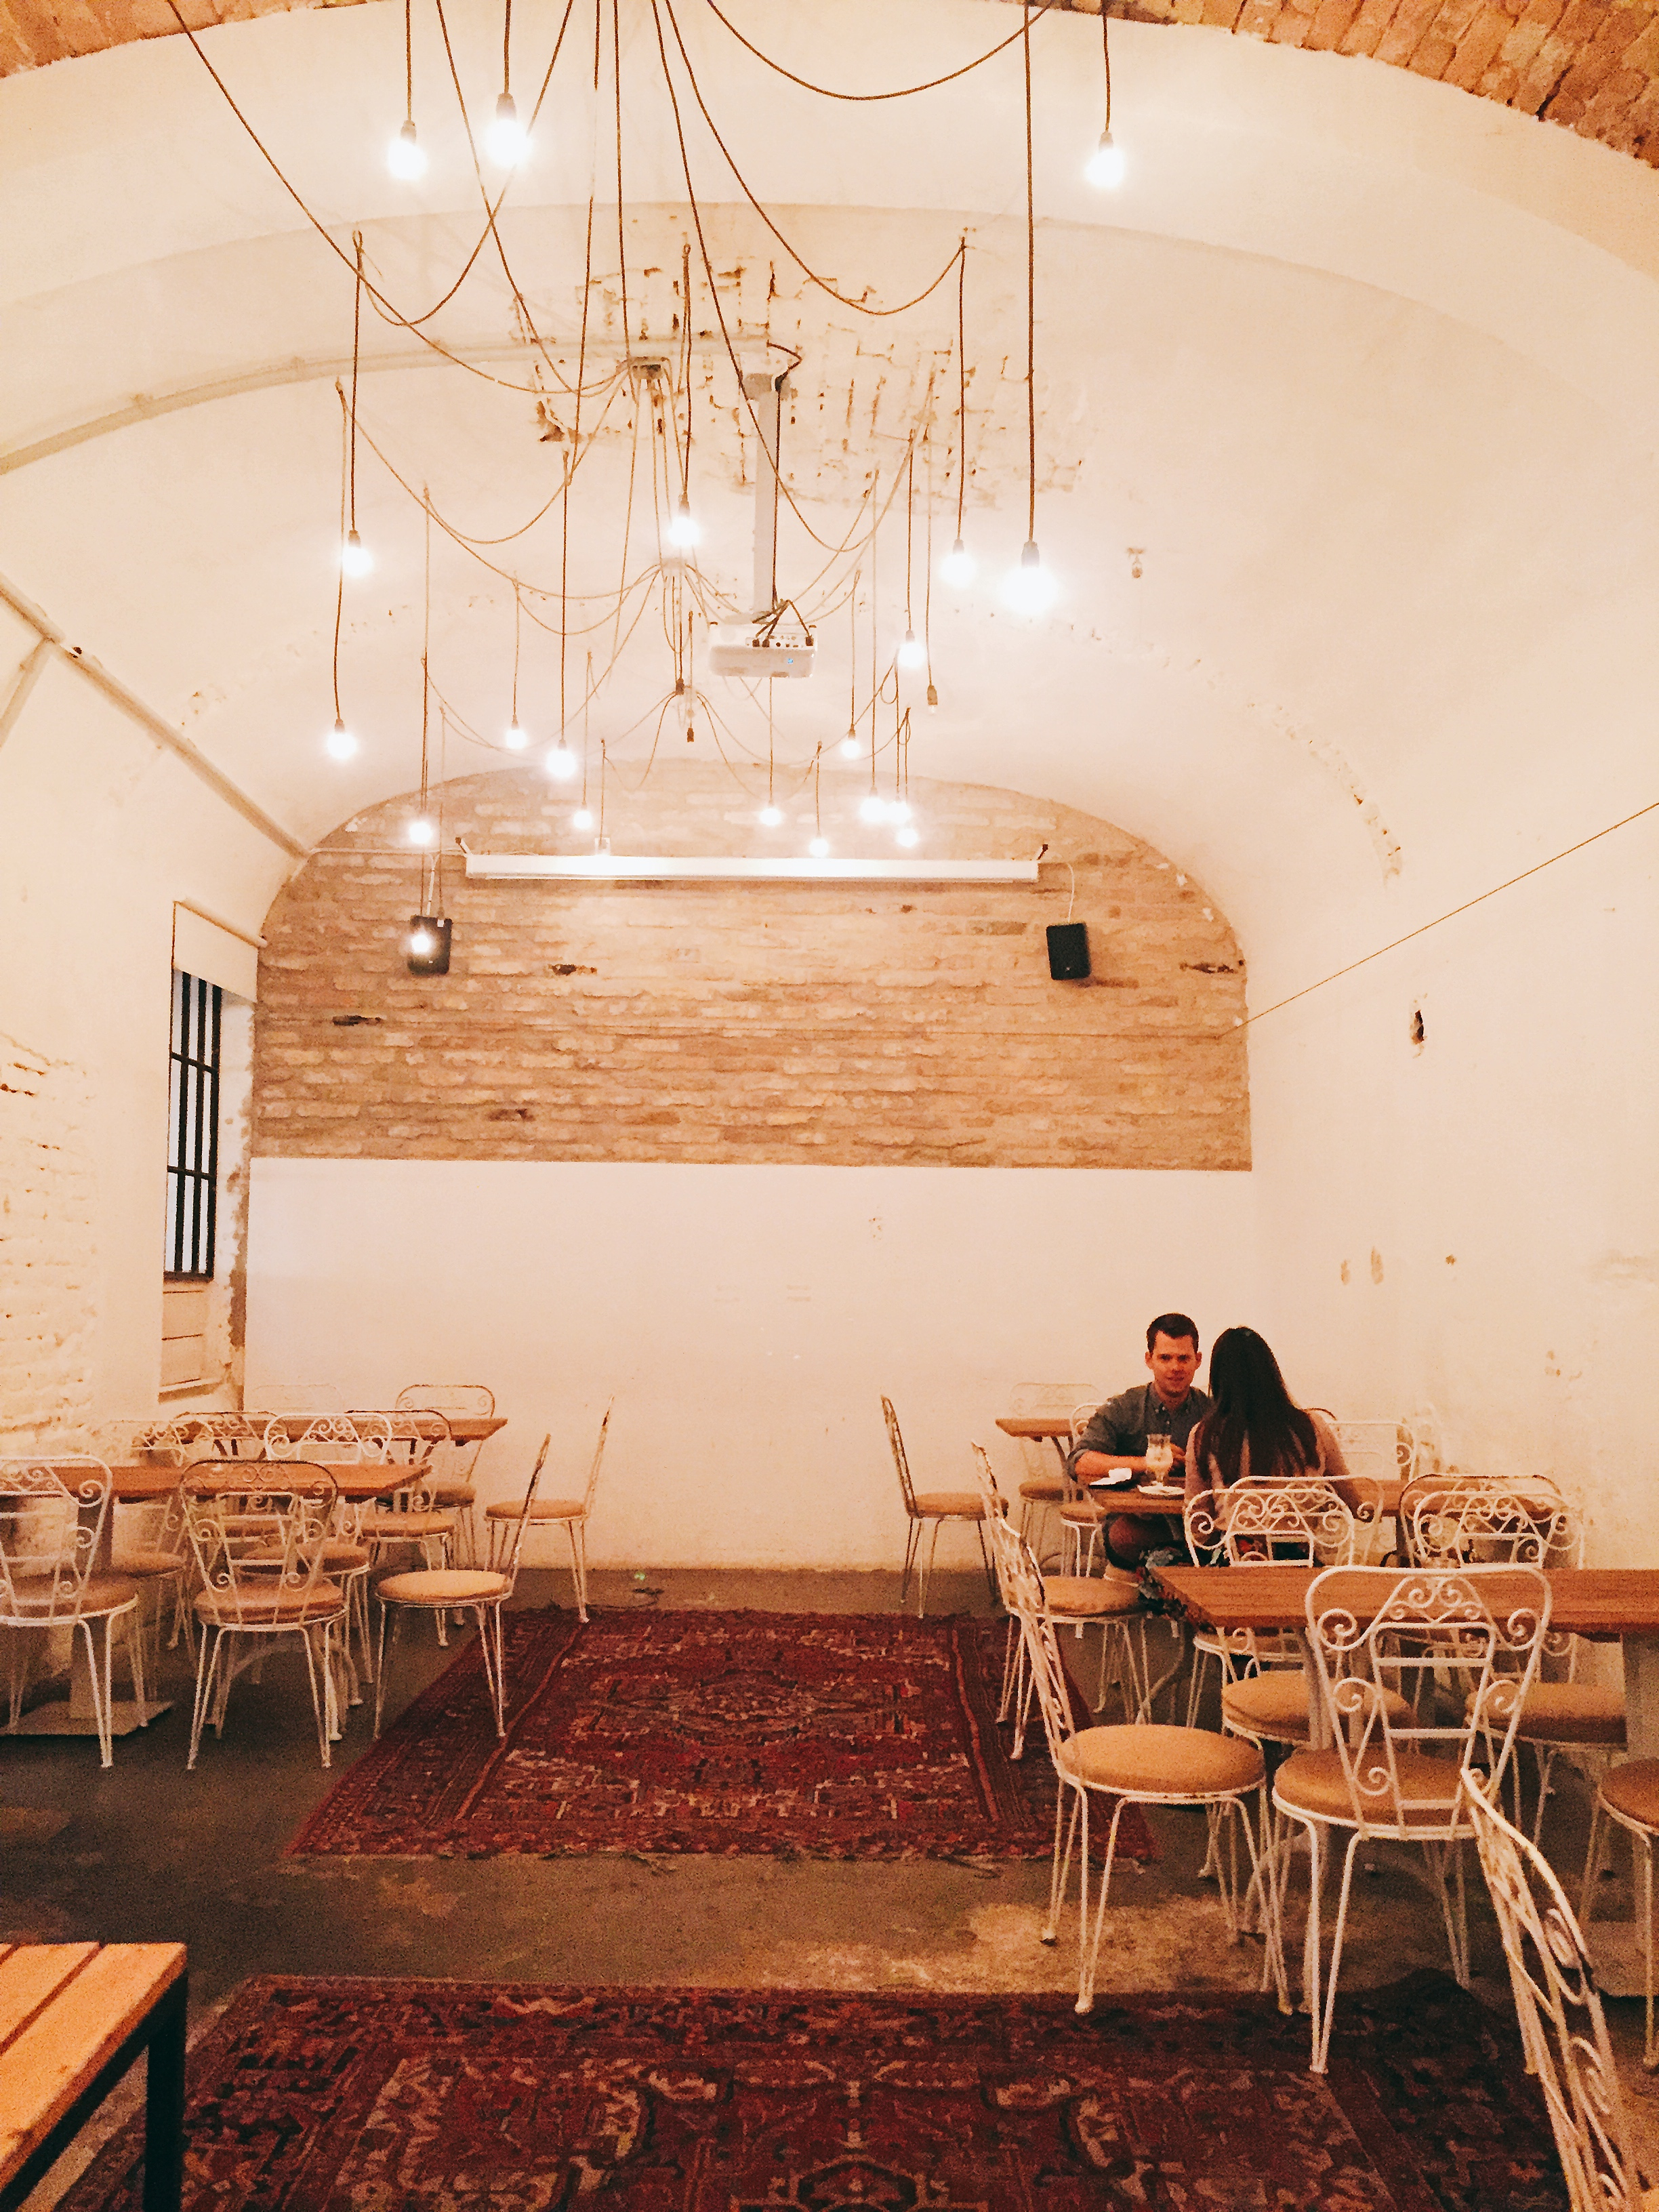 Mazel Tov - I've never really had a proper Jewish/Israeli meal before, so this was probably a first for me and it did not disappoint. Great vibes, good live music (cute singer with a Ed Sheeran kinda vibe), on point interior and BEST.HUMMUS.EVER!